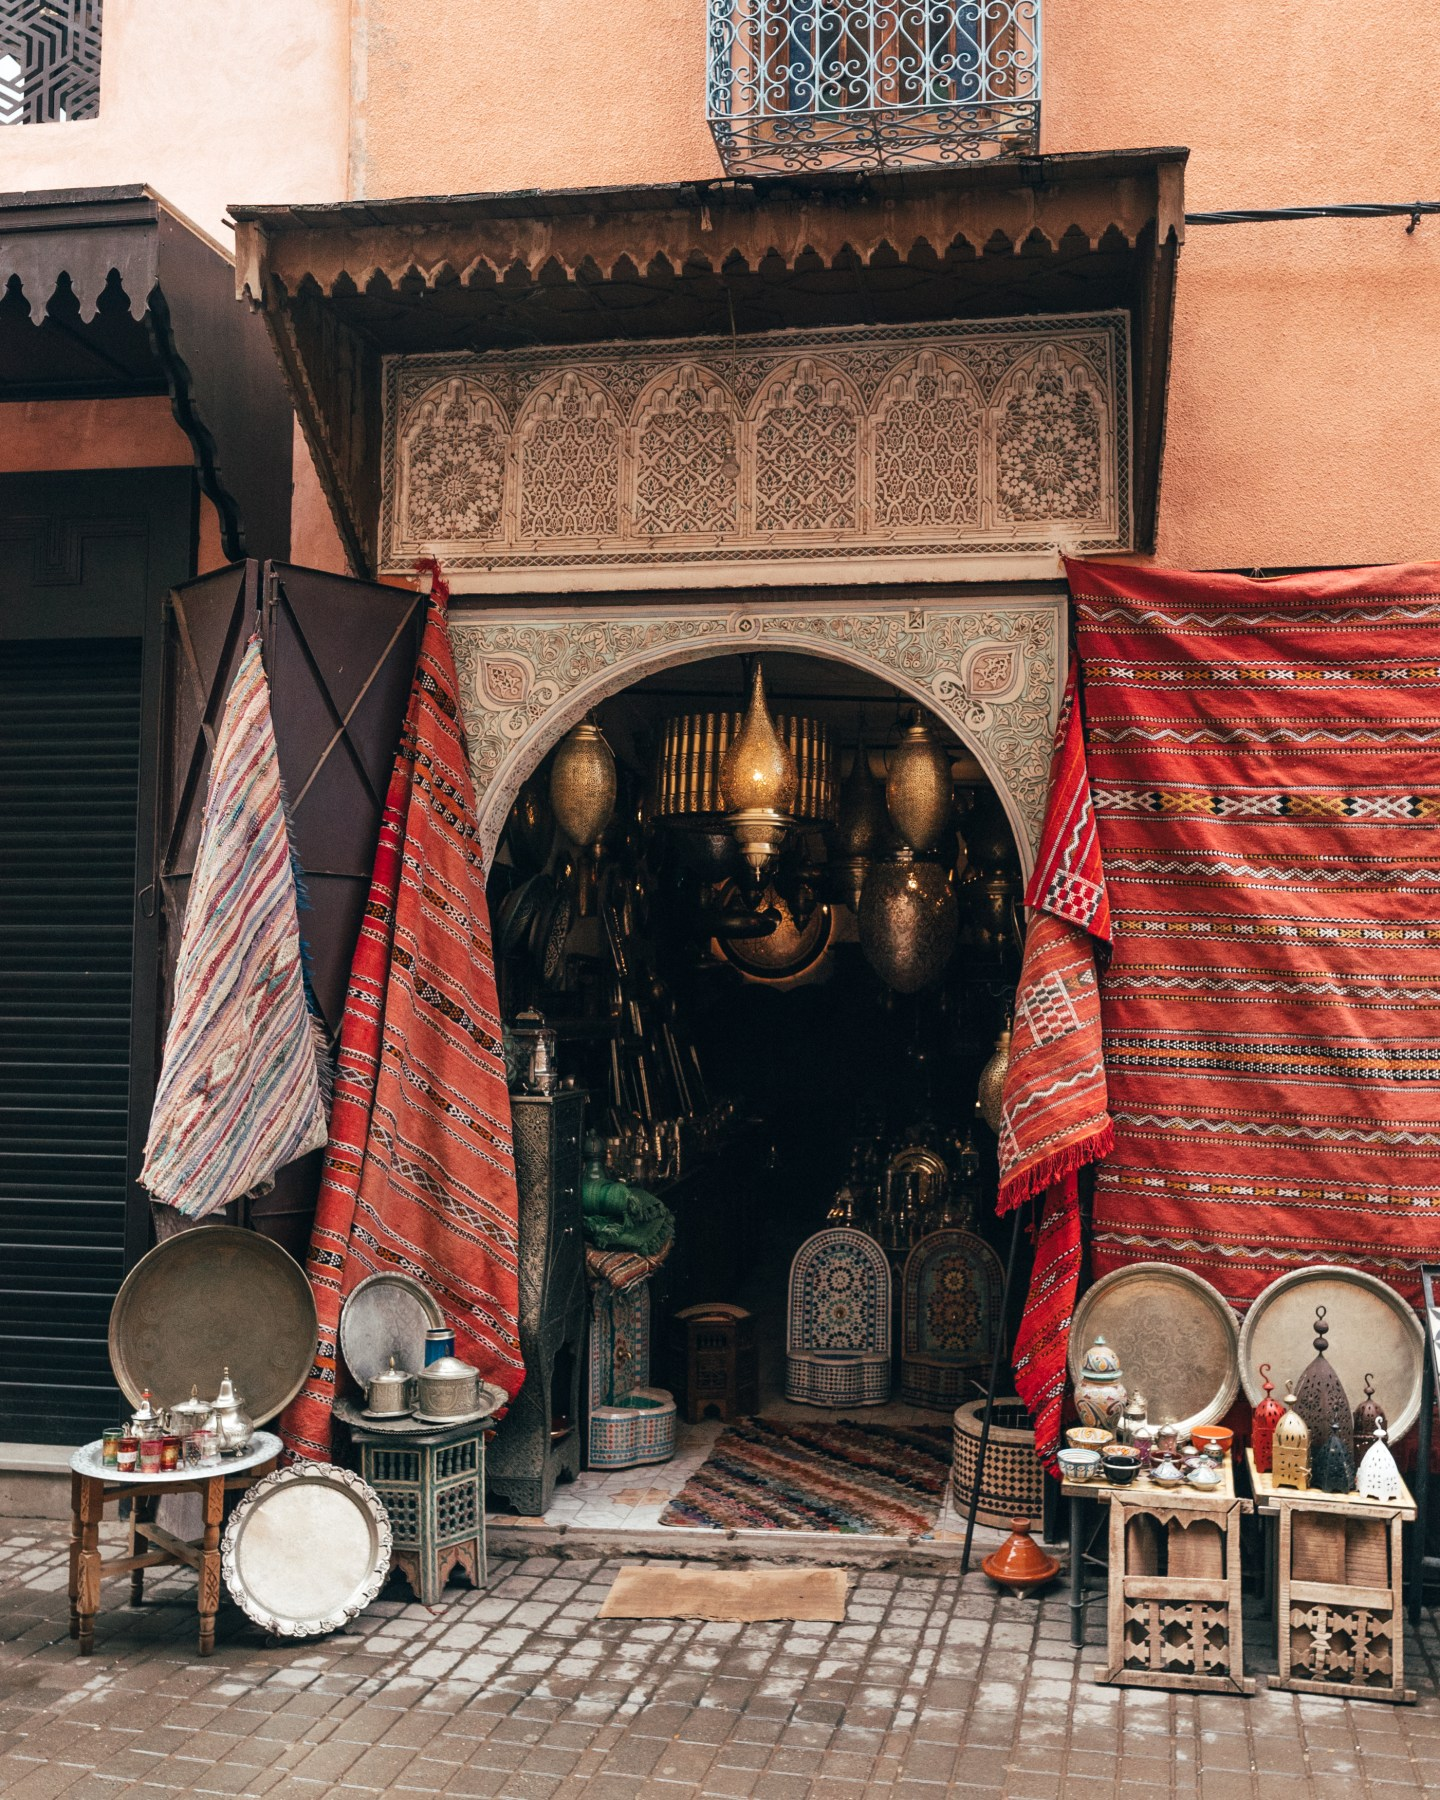 Carpet store in the souks of Marrakech